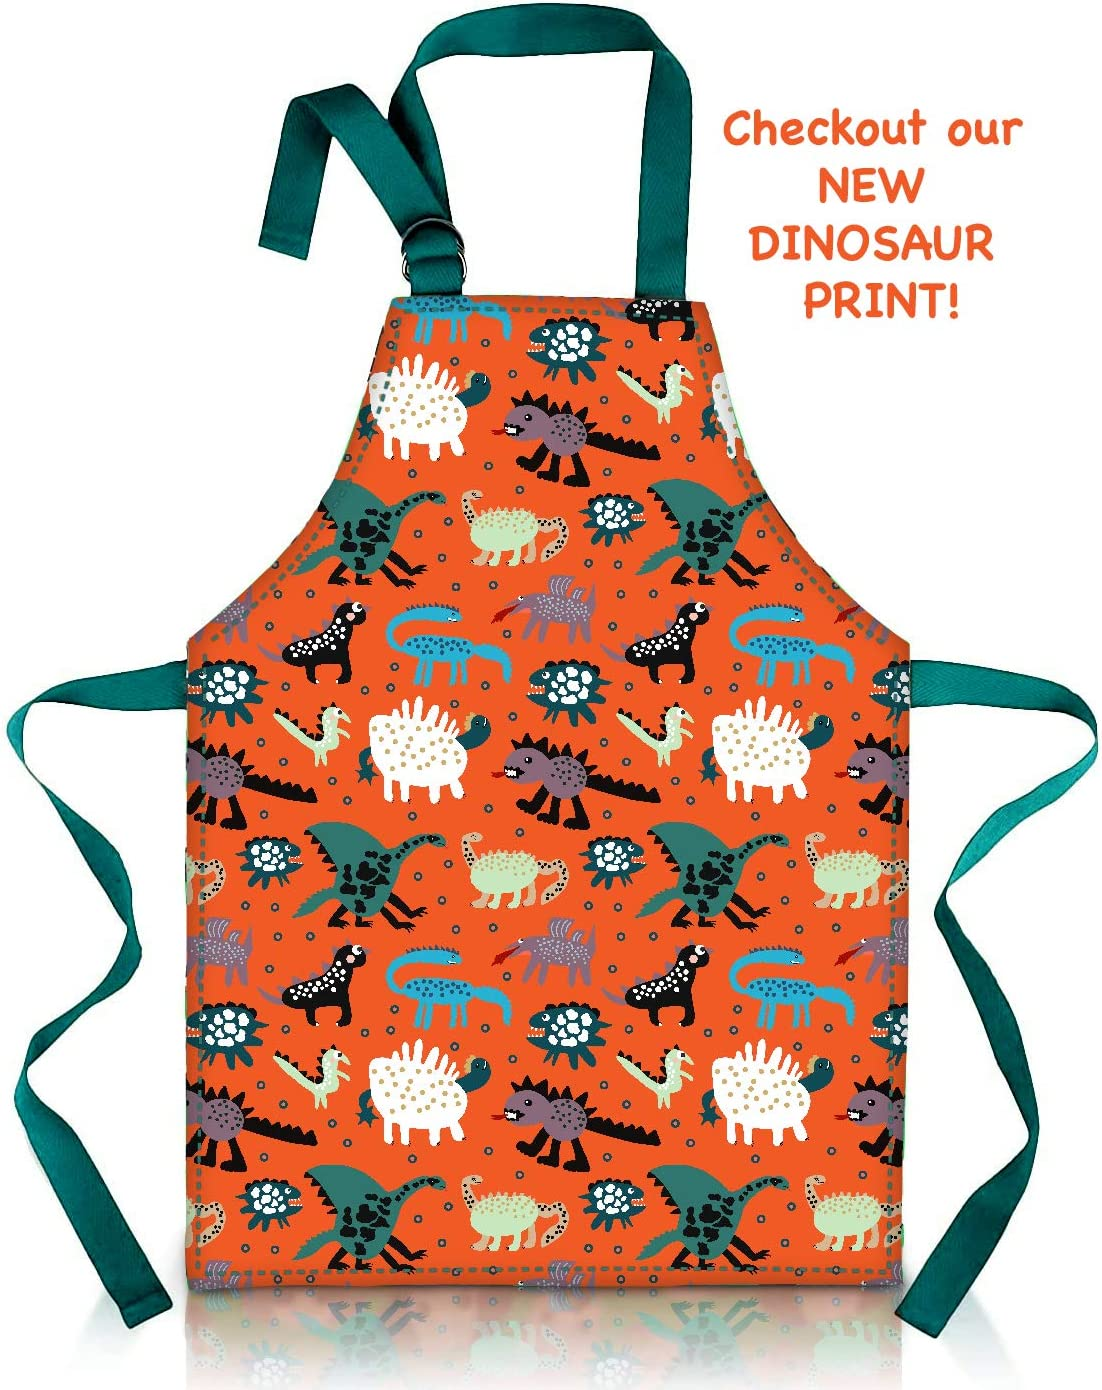 Waterproof PVC Pinny Printed in Unique Fun Dog Print for Little Cooks and Artists Age 2-4 small, blue Cute Apron for Toddler